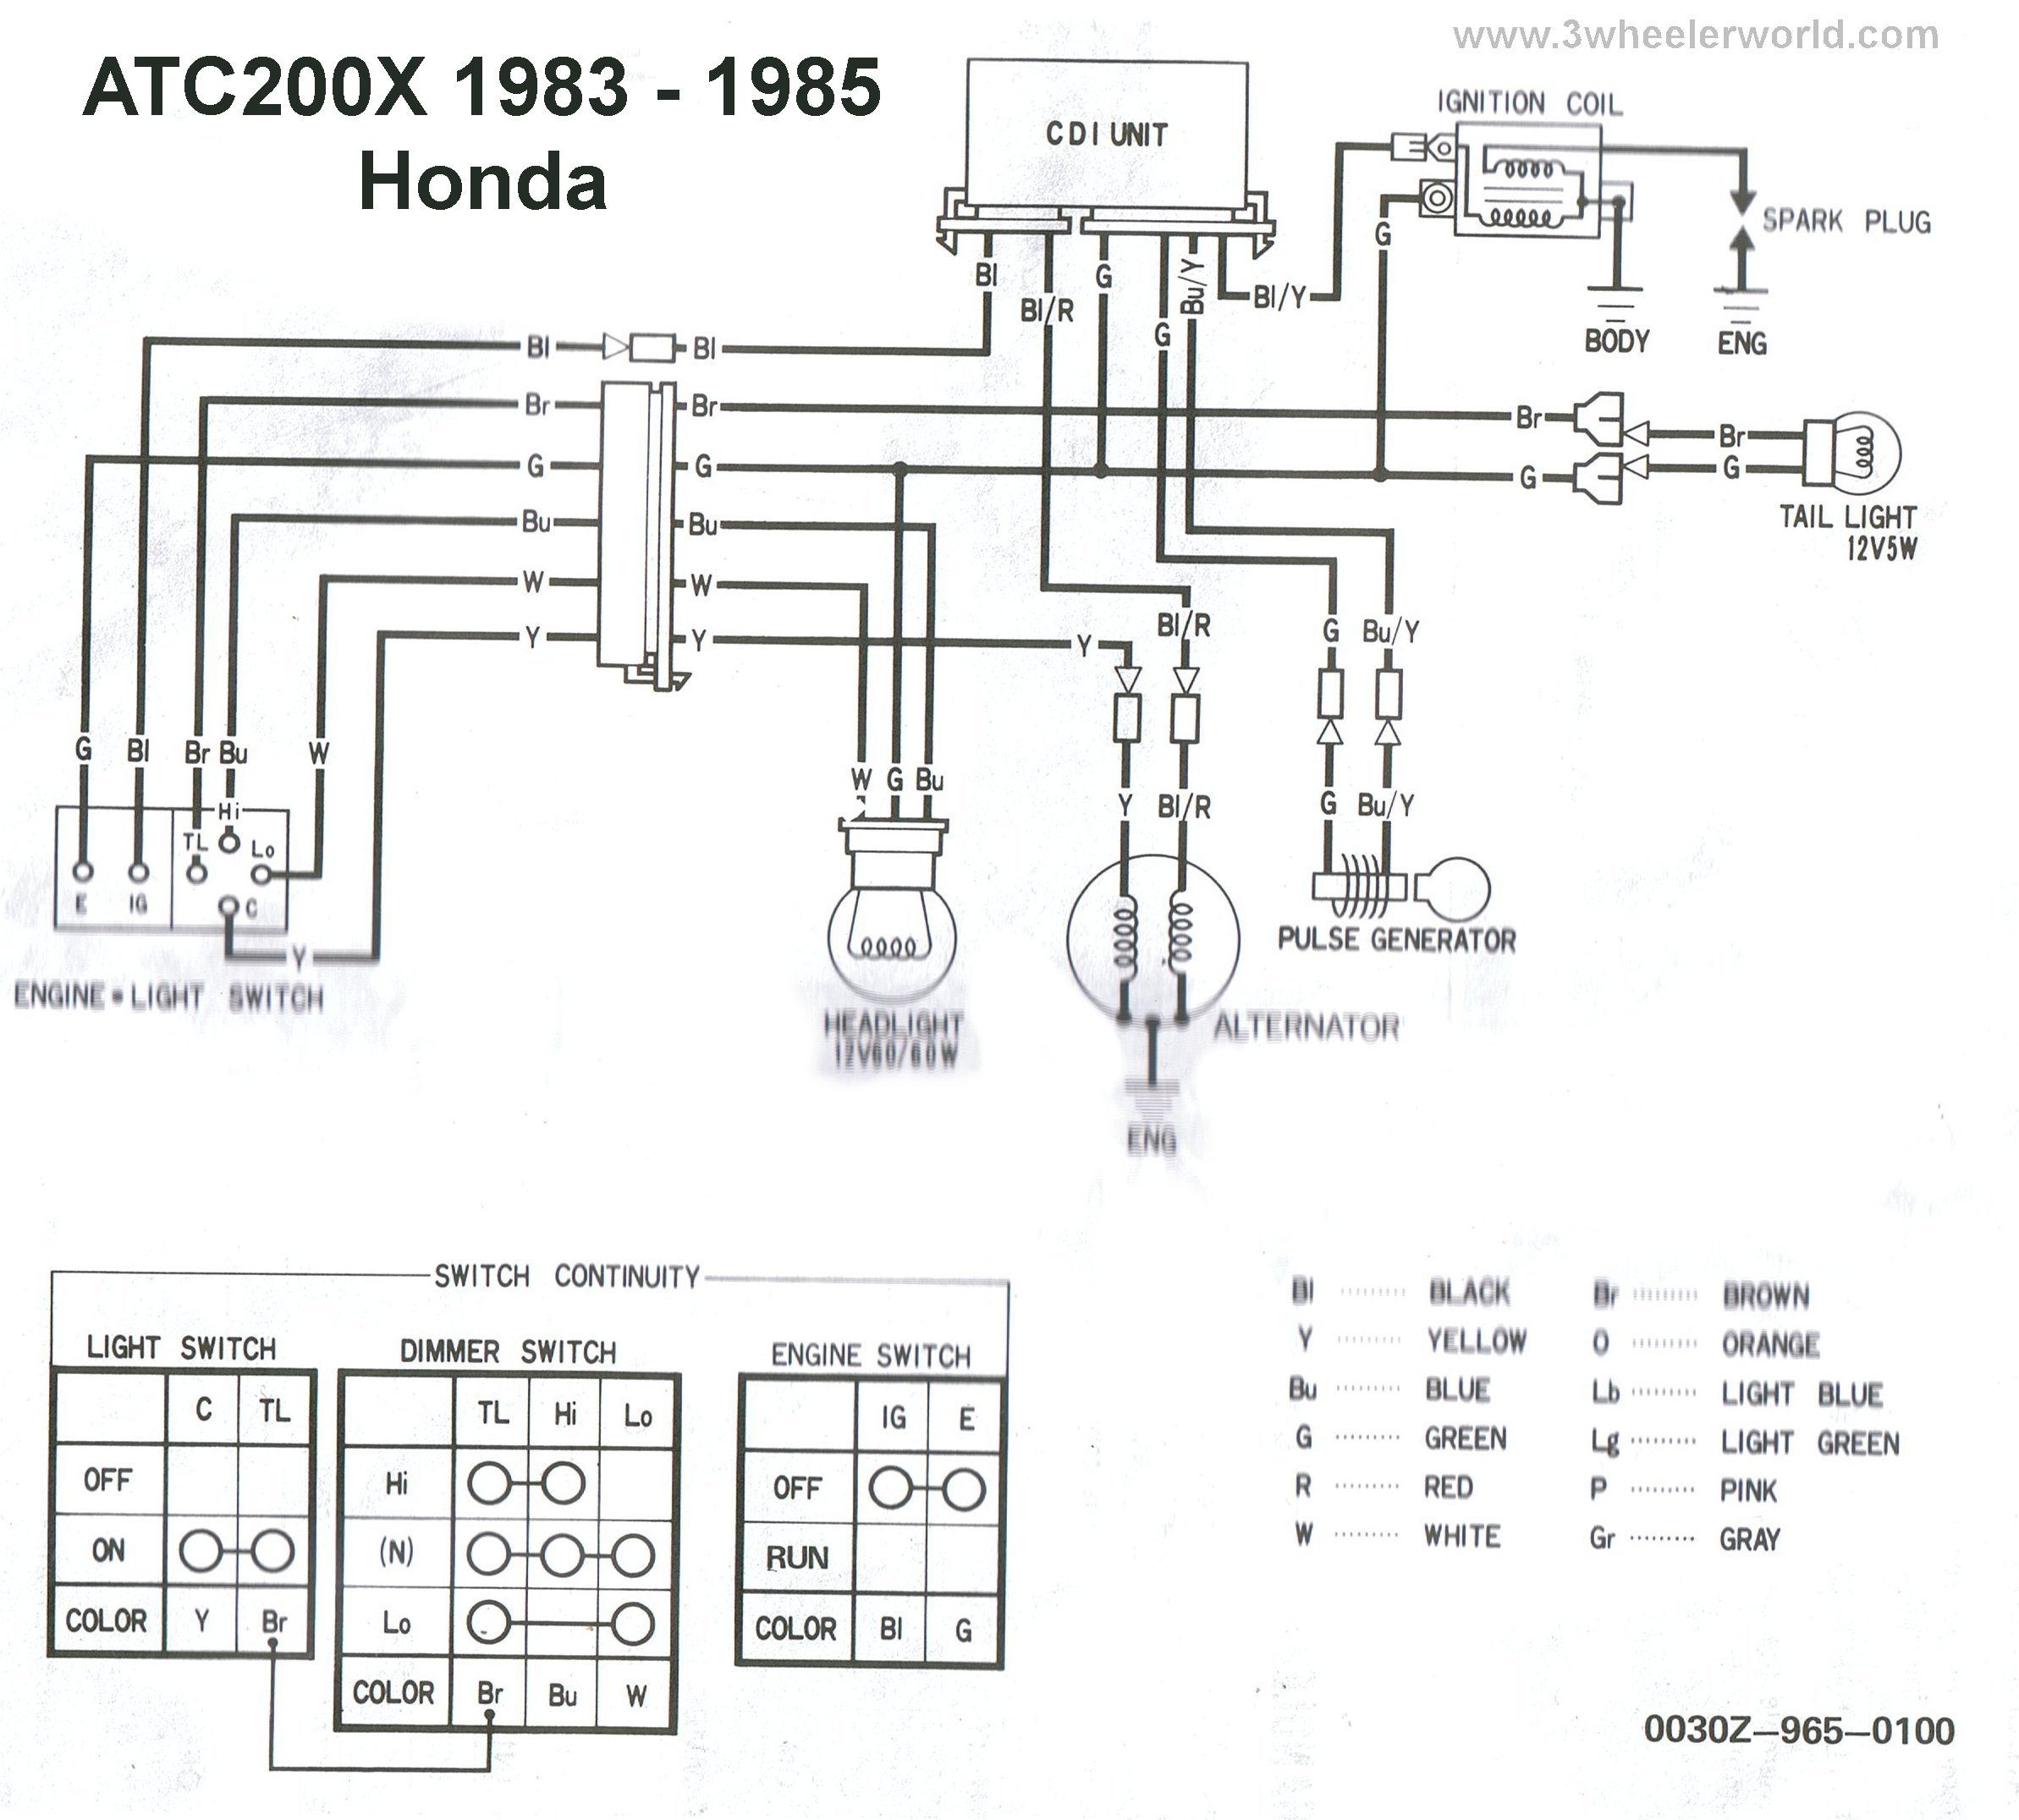 wiring diagram 1985 honda 200m diy enthusiasts wiring diagrams u2022 rh broadwaycomputers us Honda ATV Wiring Diagram 1988 Honda 200 Wiring Diagram